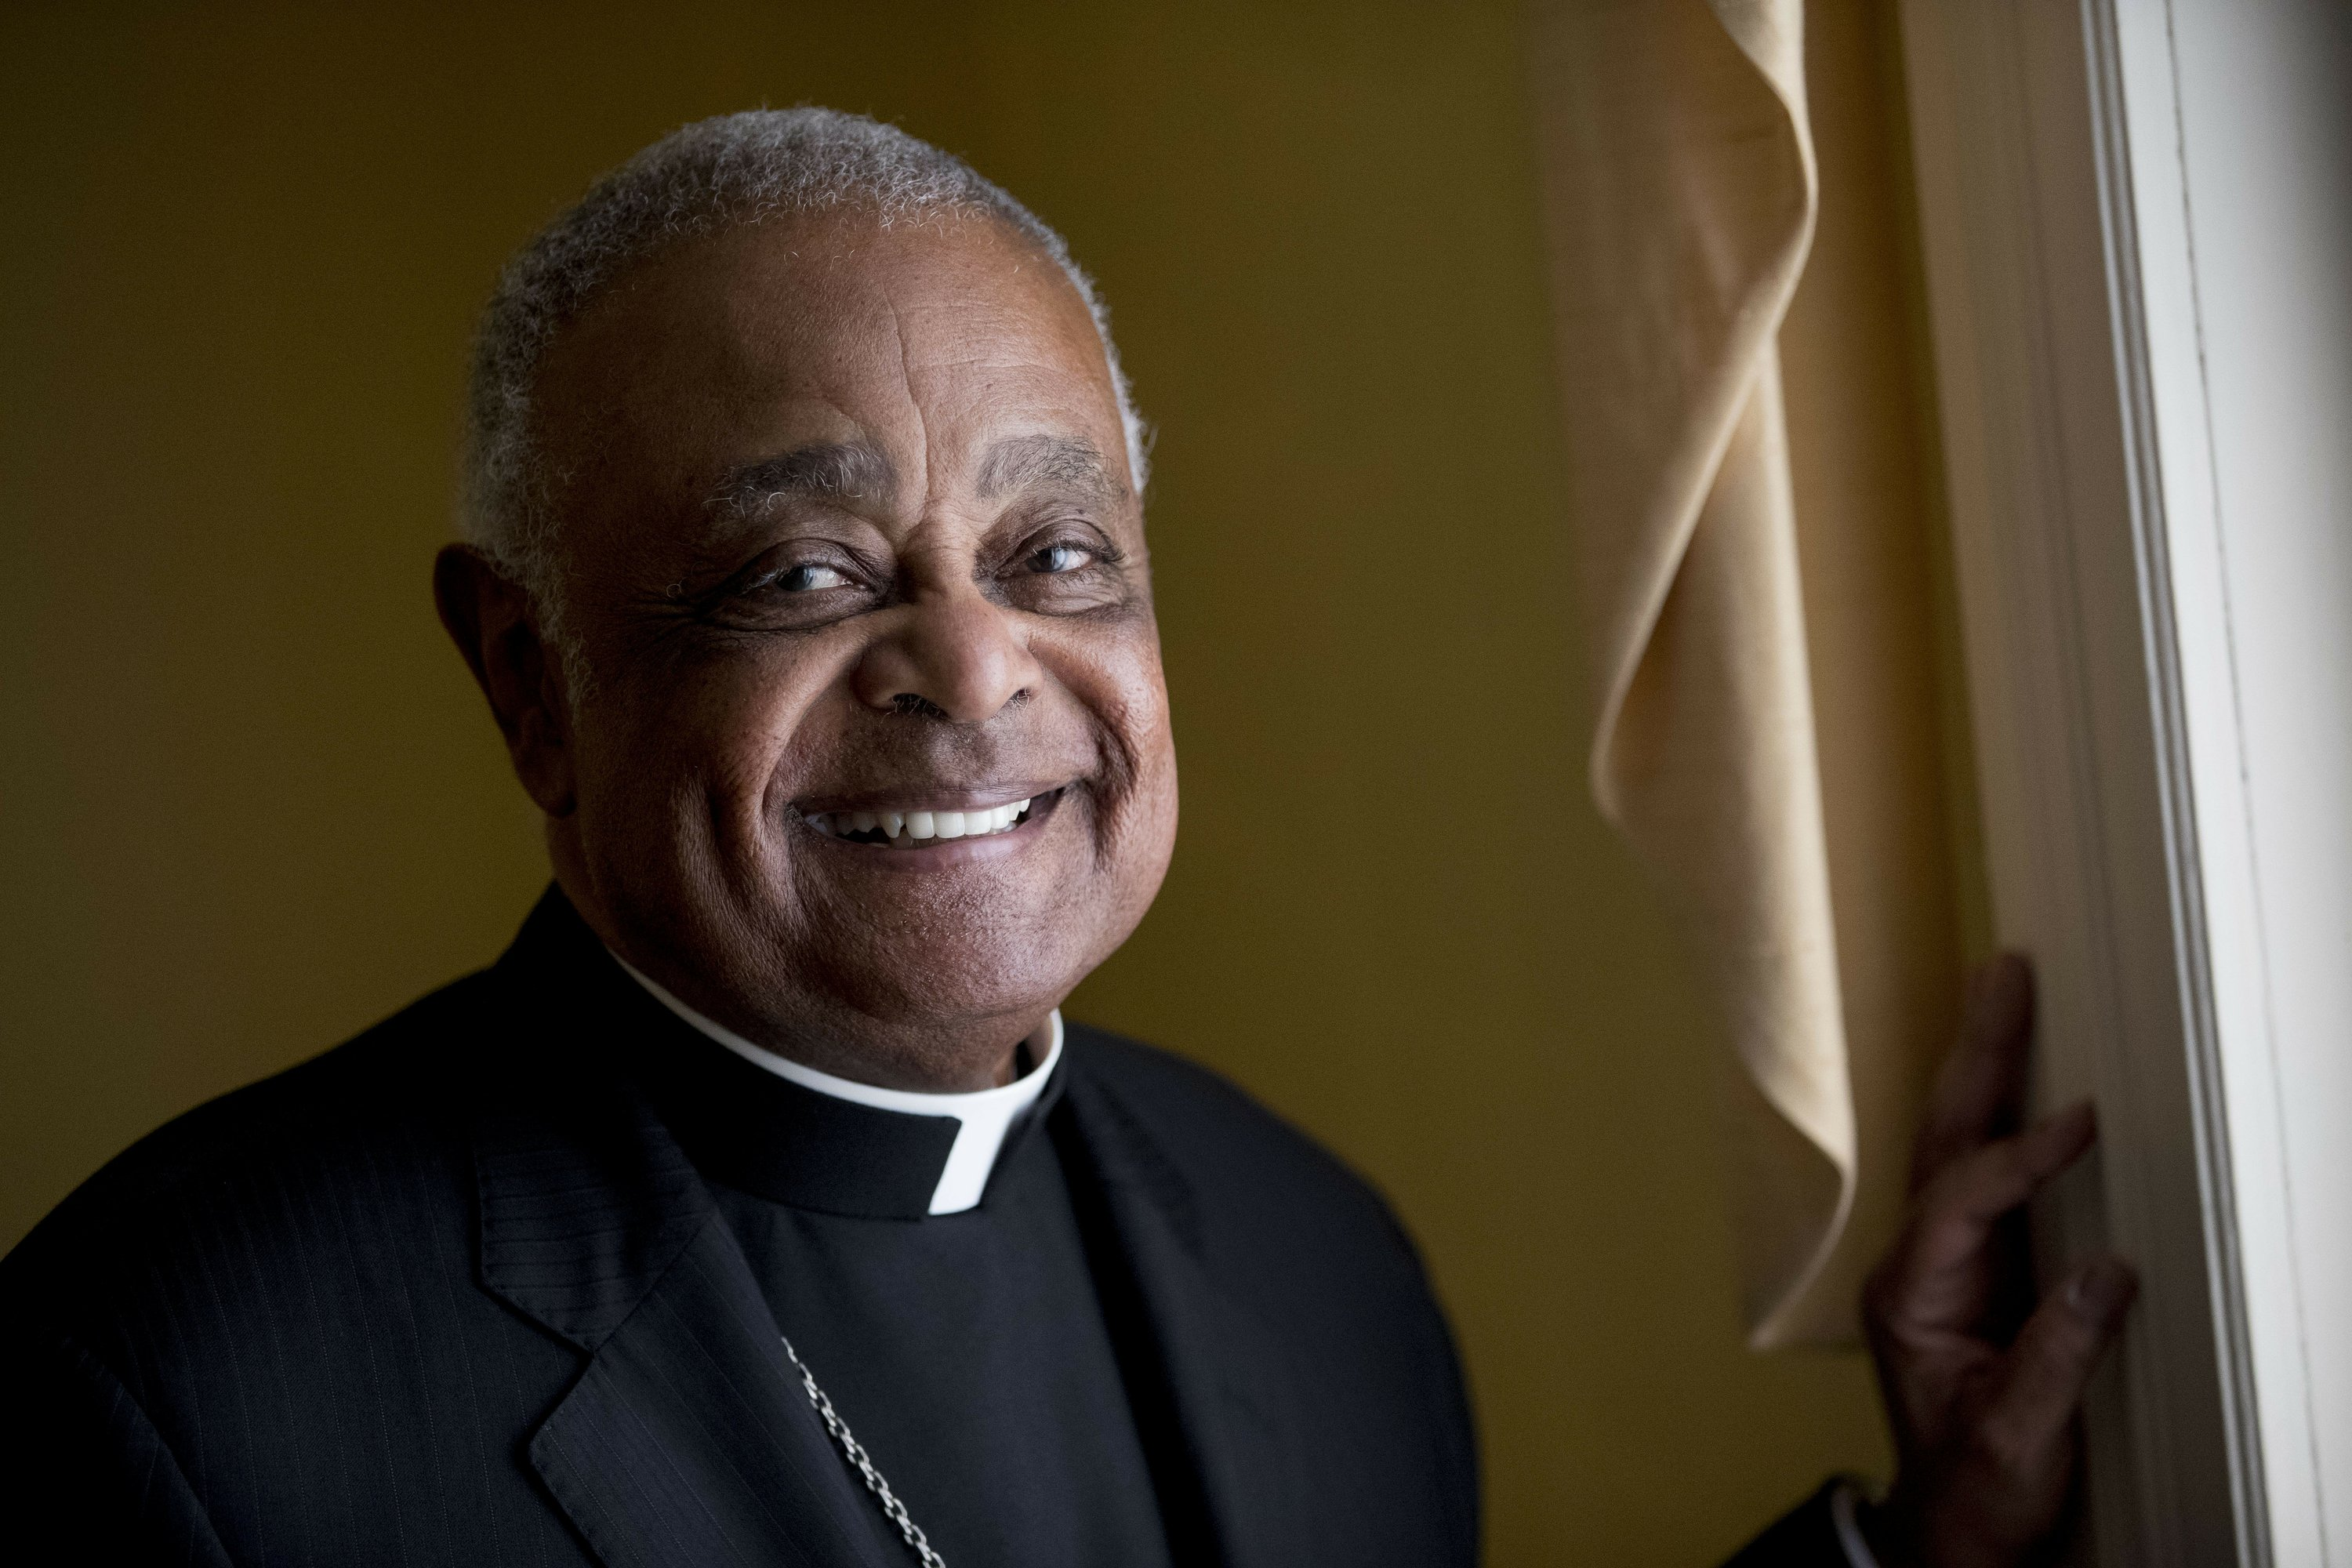 BREAKING: Pope Francis has named 13 new cardinals, including Washington D.C. Archbishop Wilton Gregory, who would become the first Black U.S. prelate elevated to cardinal.